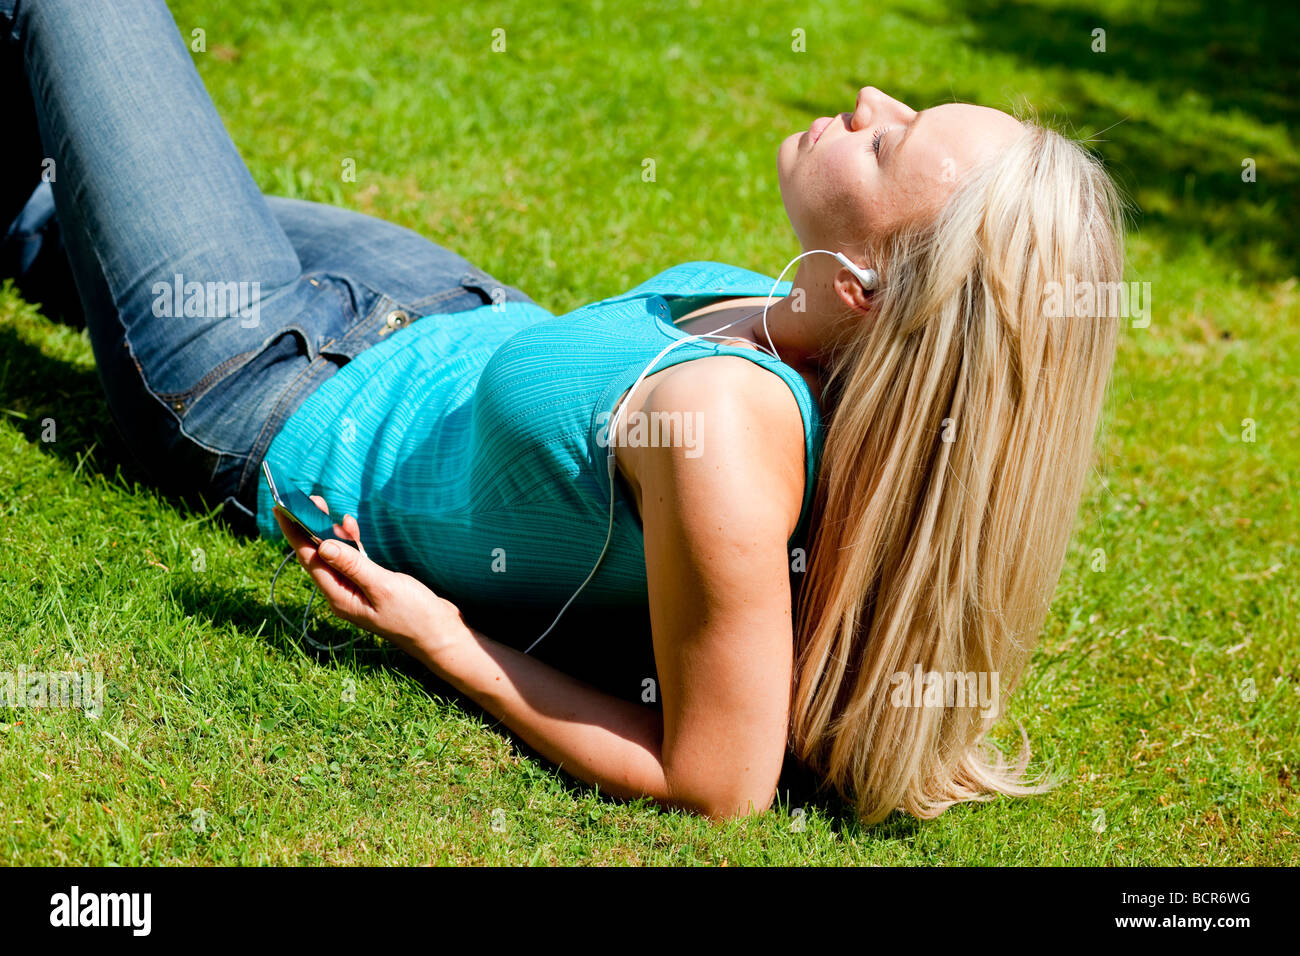 Girl lying on grass listening to mp3 player - Stock Image